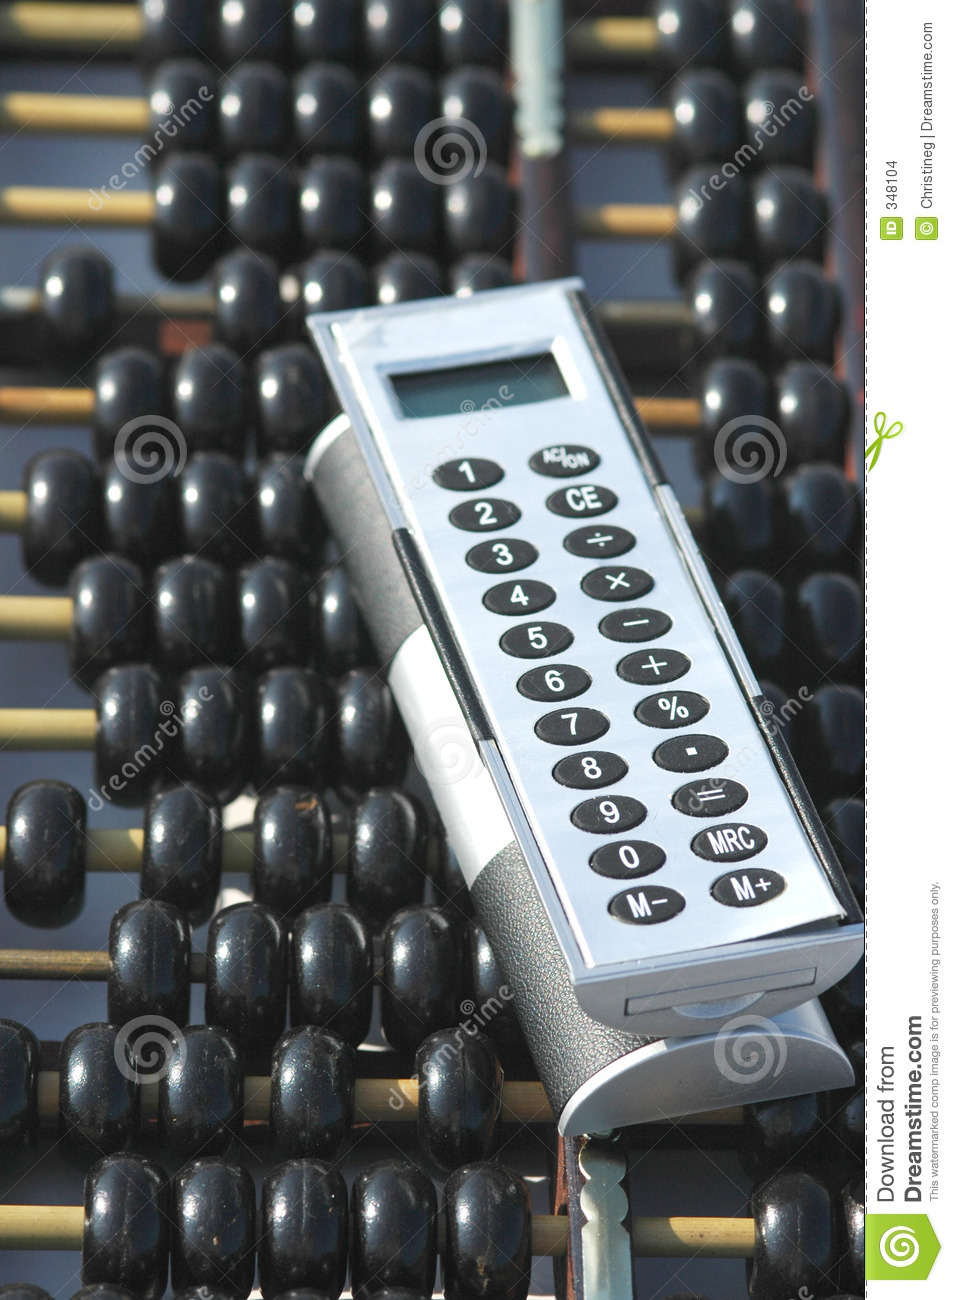 Abacus and calculator stock photo  Image of counting